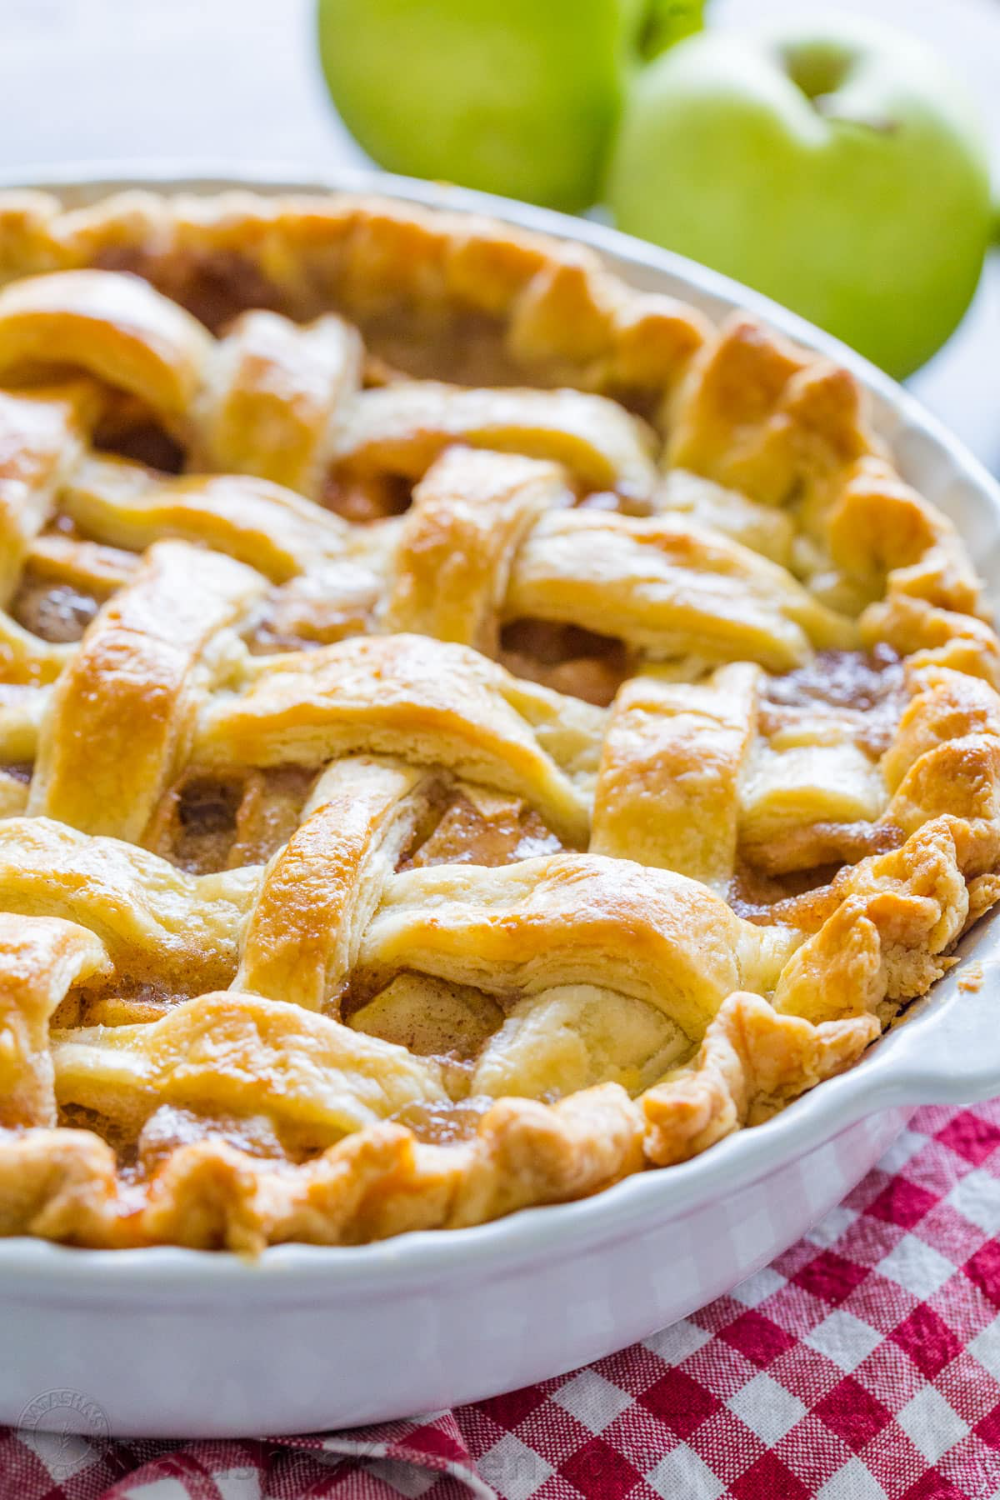 The Only Apple Pie Recipe You Will Need The Pie Crust Is Perfection And The Filling Will Surpris In 2020 Classic Apple Pie Recipe Apple Pie Recipes Apple Pies Filling